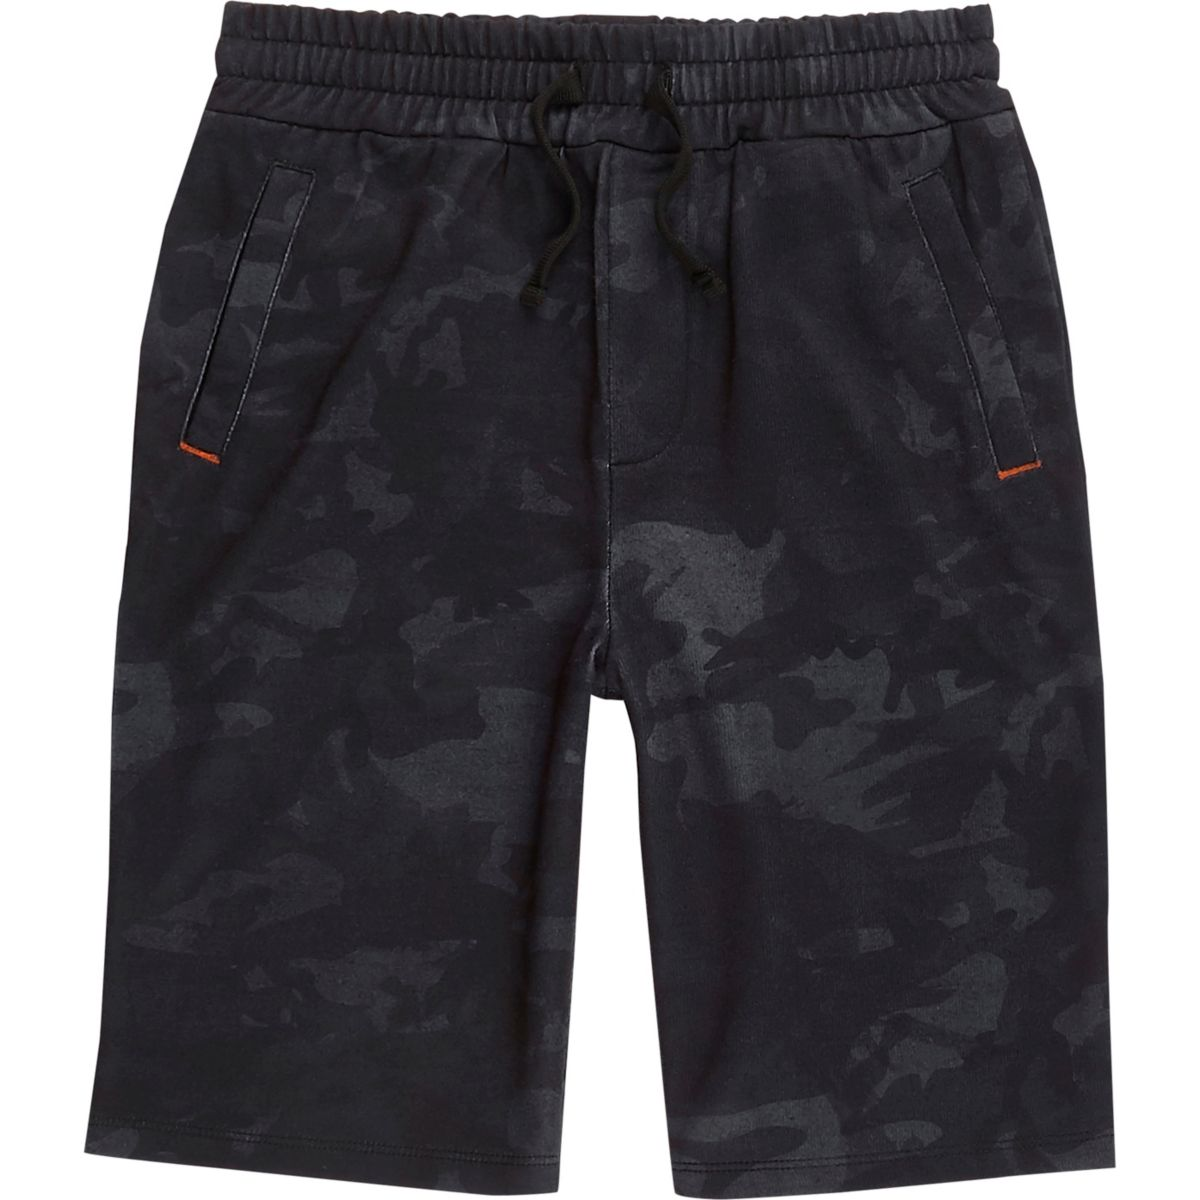 Shop for boys jersey shorts online at Target. Free shipping on purchases over $35 and save 5% every day with your Target REDcard.